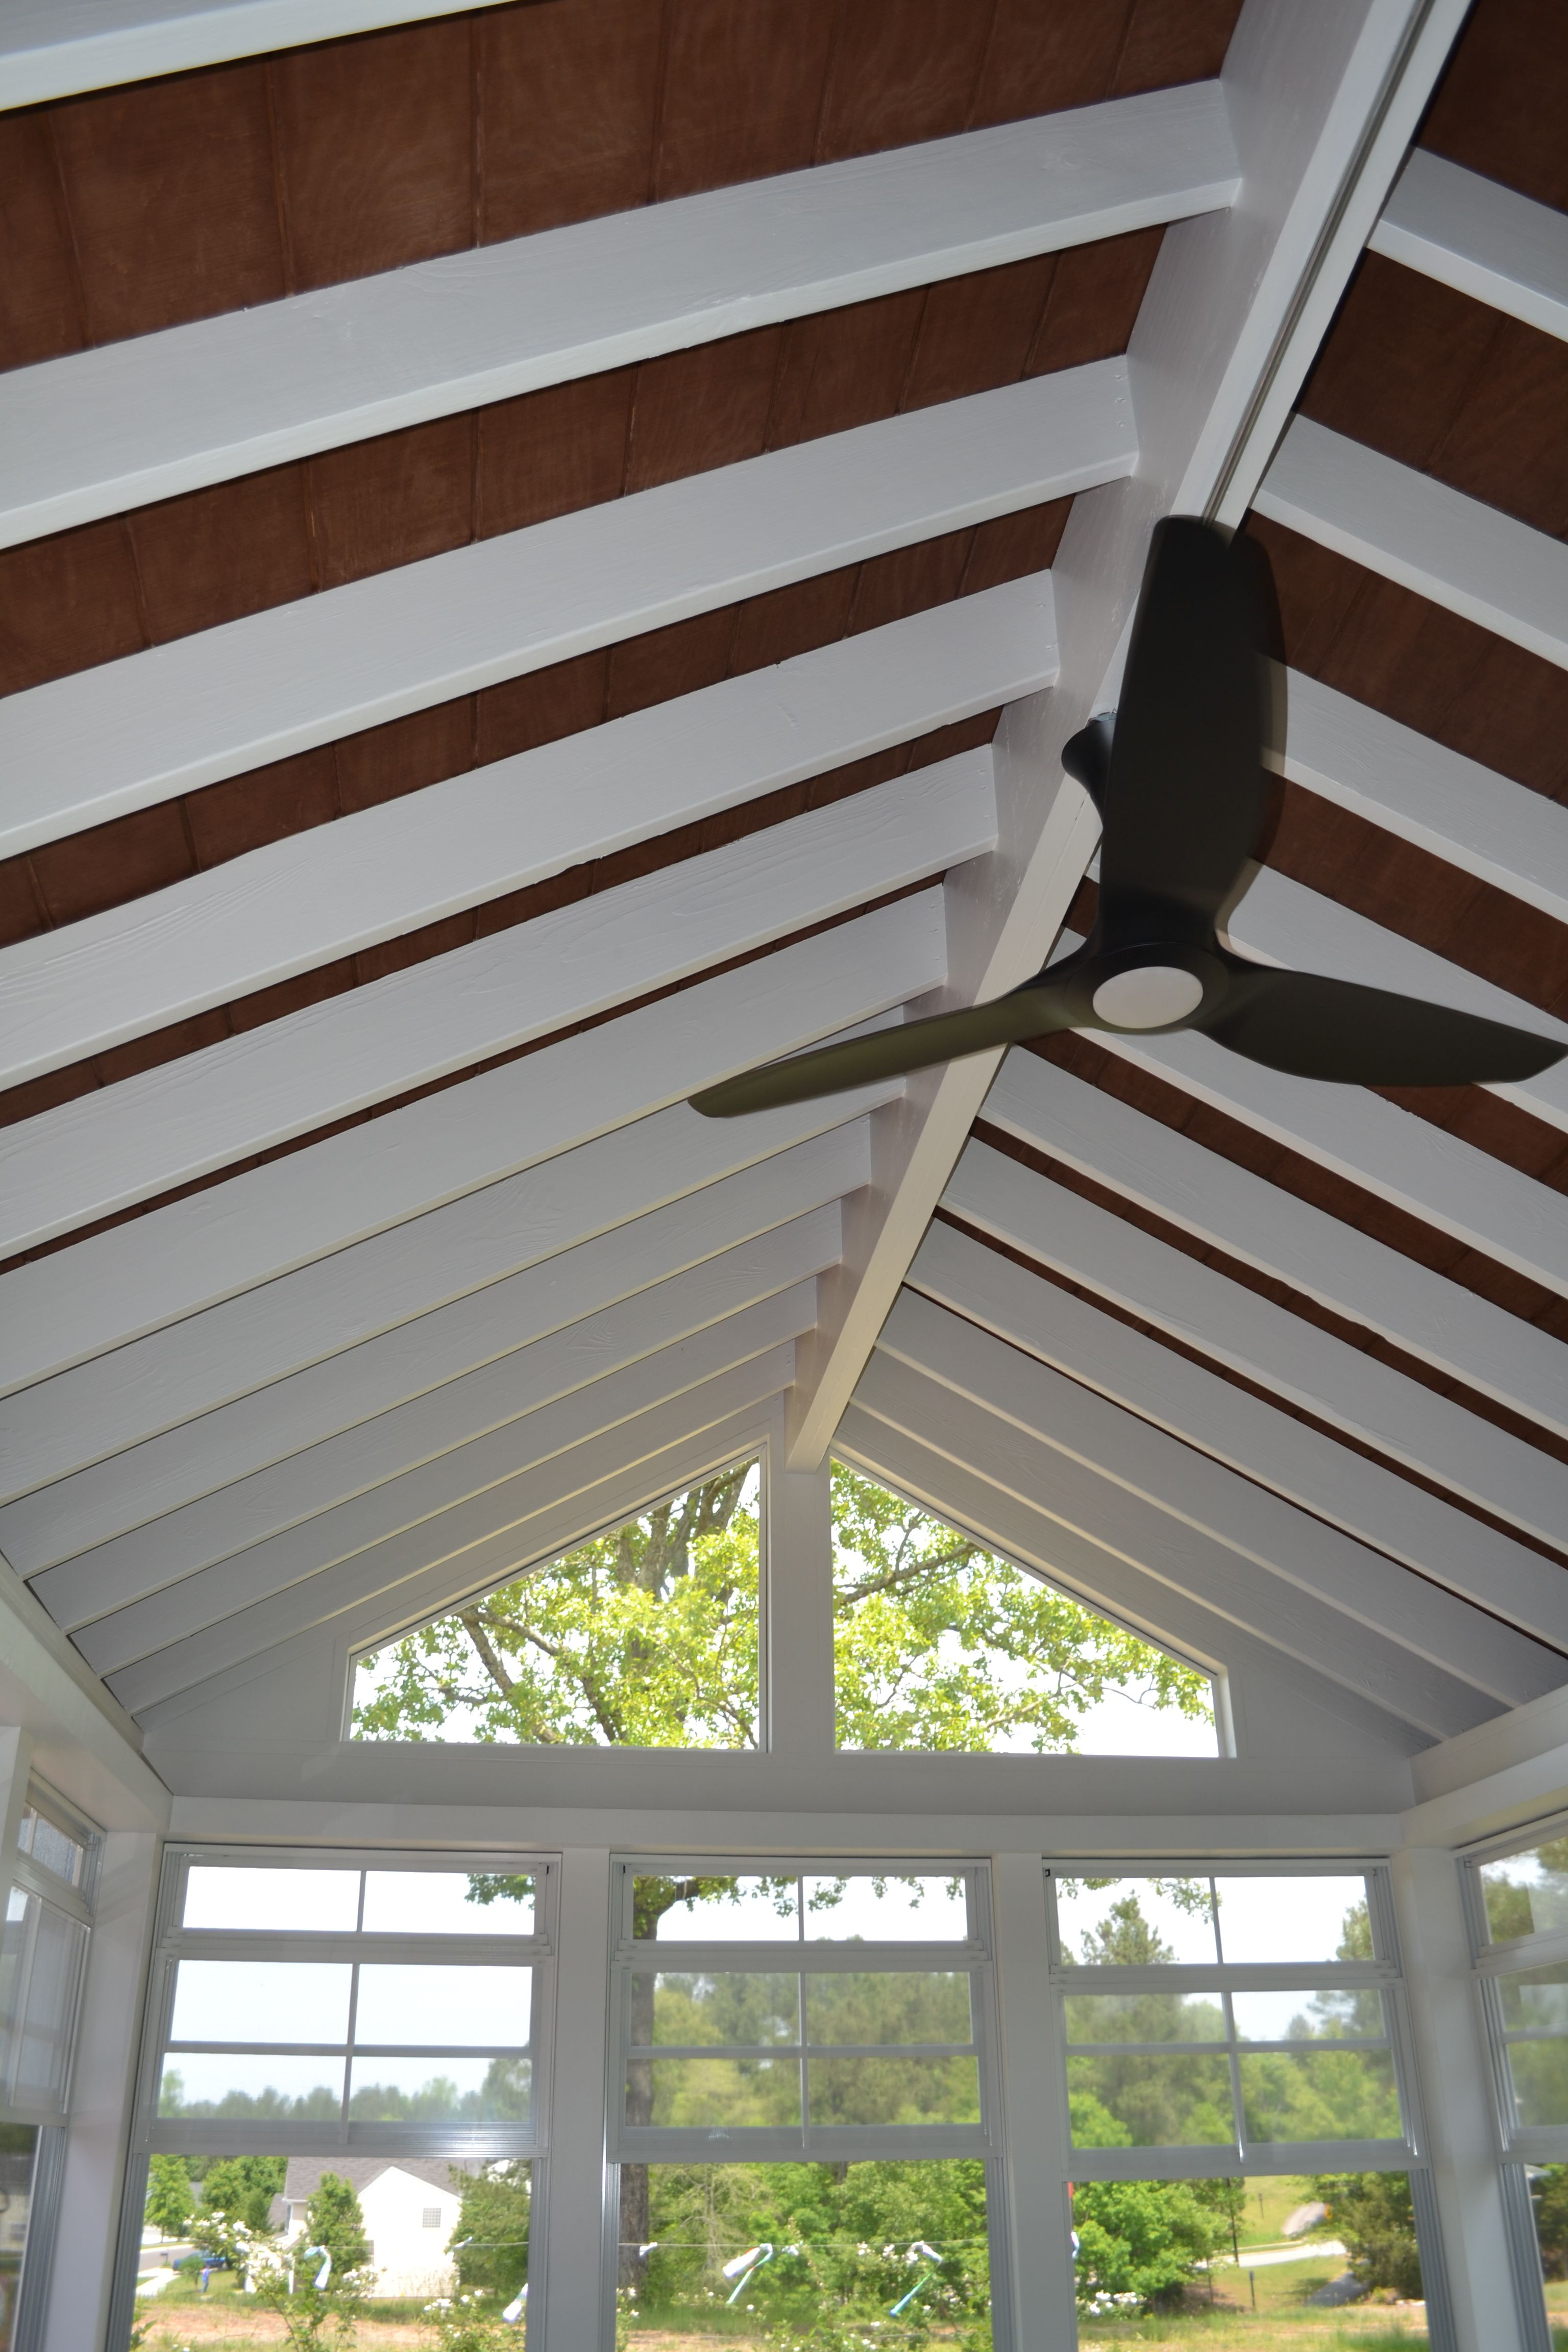 Screened Porch Exposed Beams : Custom durham screened porch with eze breeze windows and